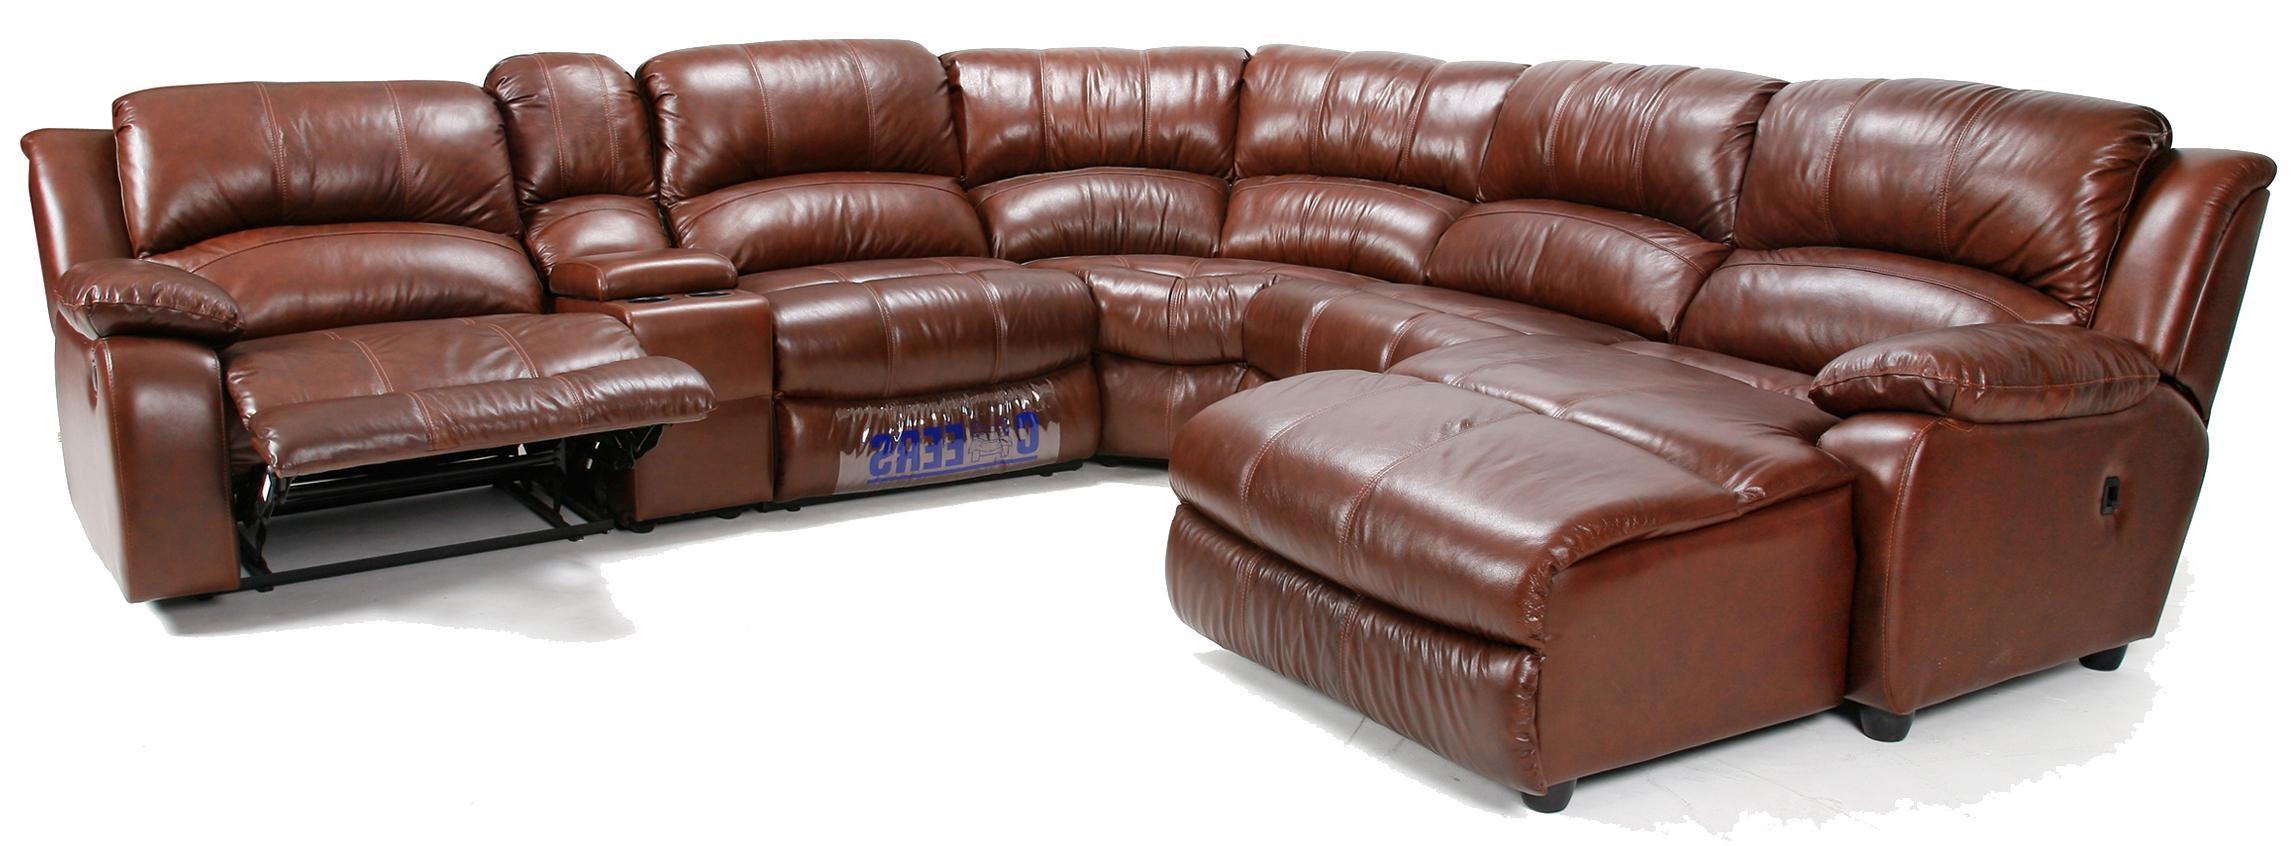 Cheers Sofa U8582 Reclining Sectional Sofa With Chaise And Console